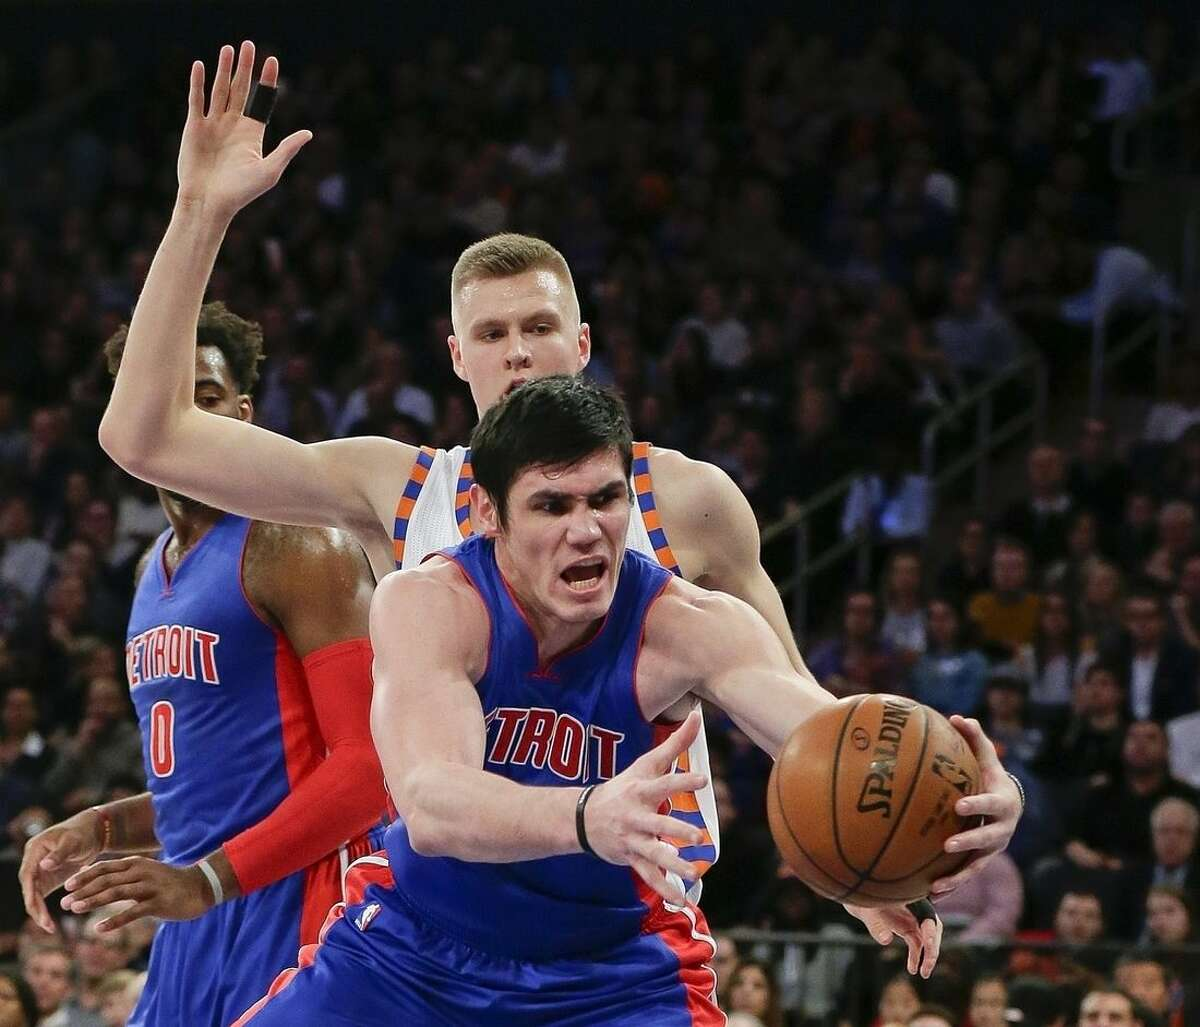 Detroit Pistons' Ersan Ilyasova, right, fights for the ball with New York Knicks' Kristaps Porzingis during the first half of an NBA basketball game Tuesday, Dec. 29, 2015, in New York. (AP Photo/Frank Franklin II)